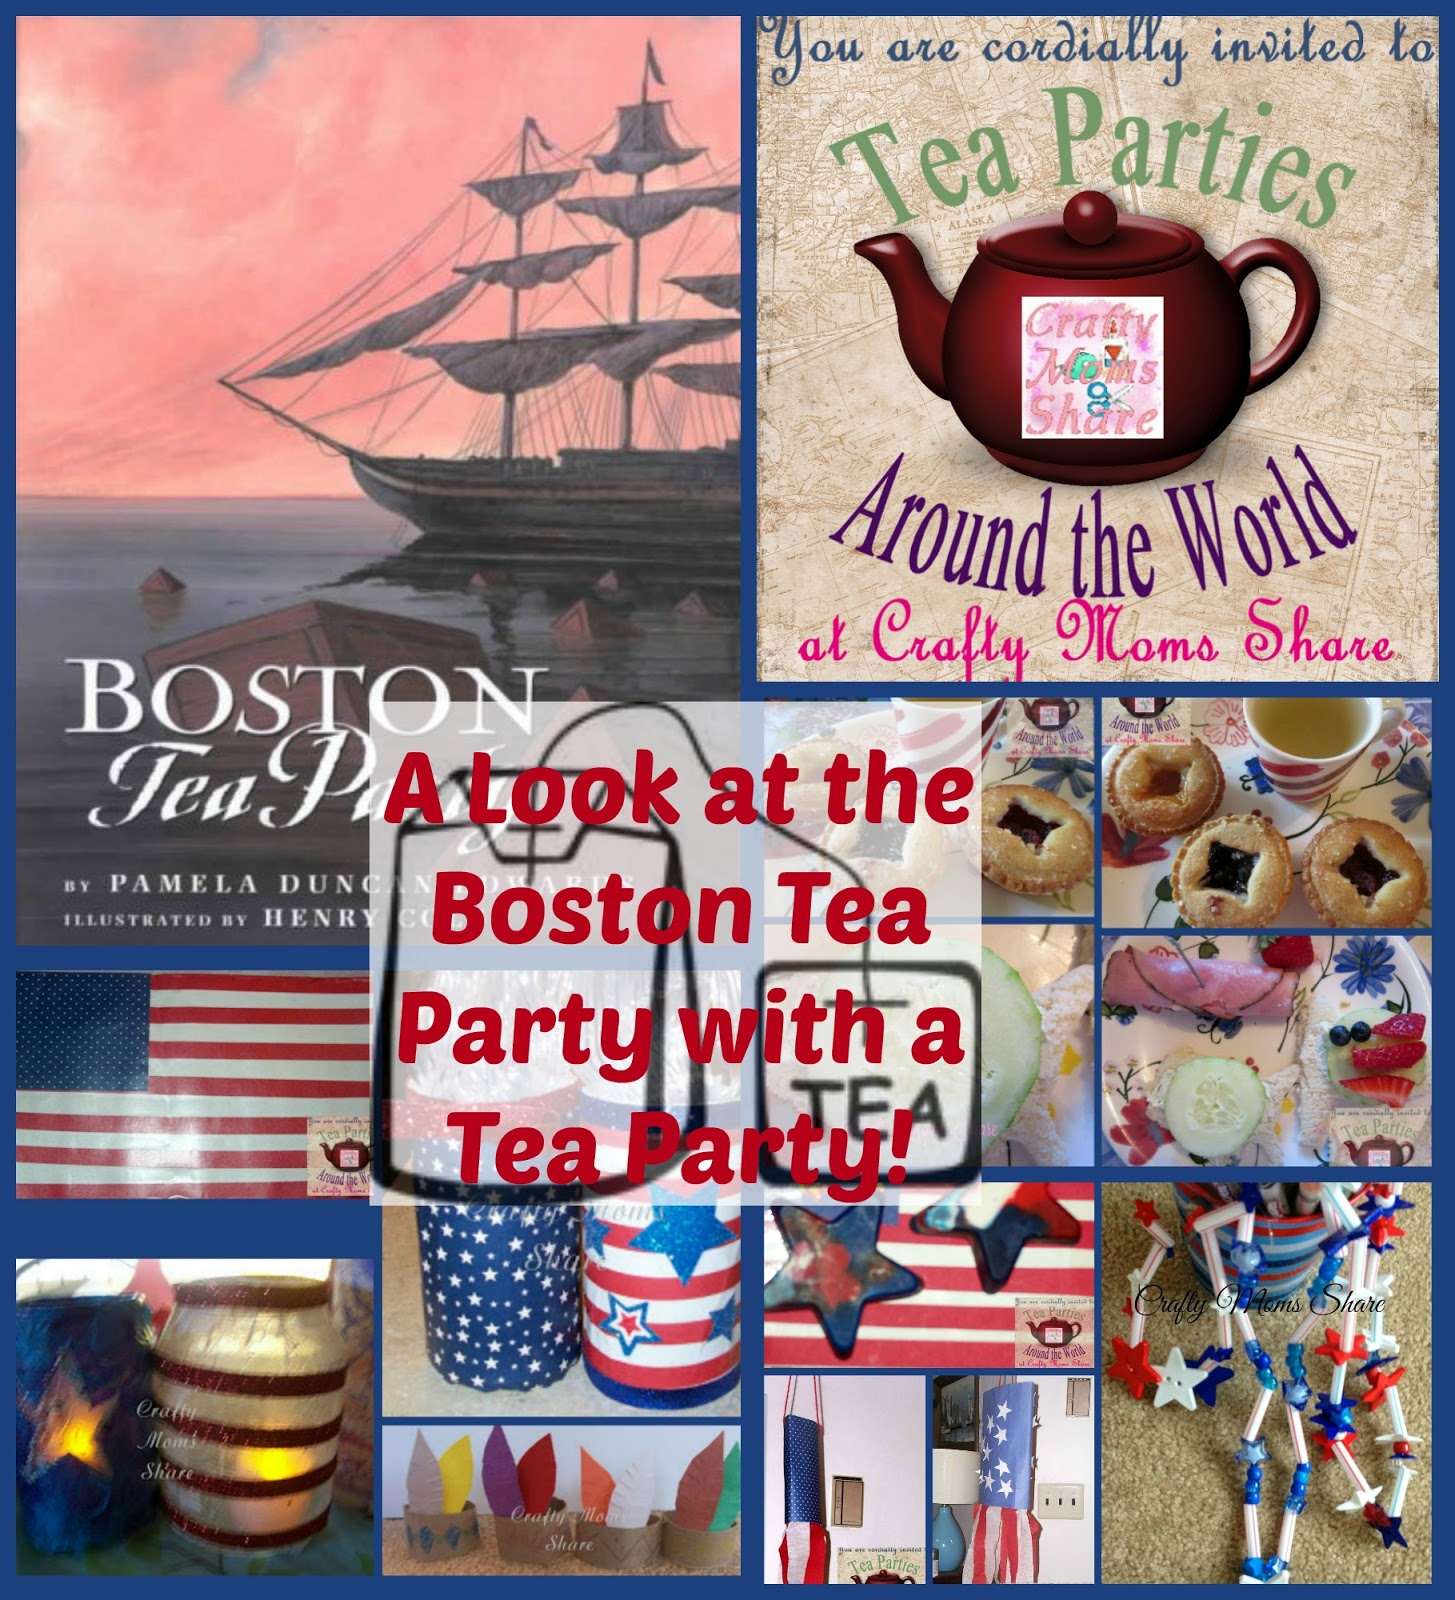 crafty moms share boston tea party themed tea party around the world